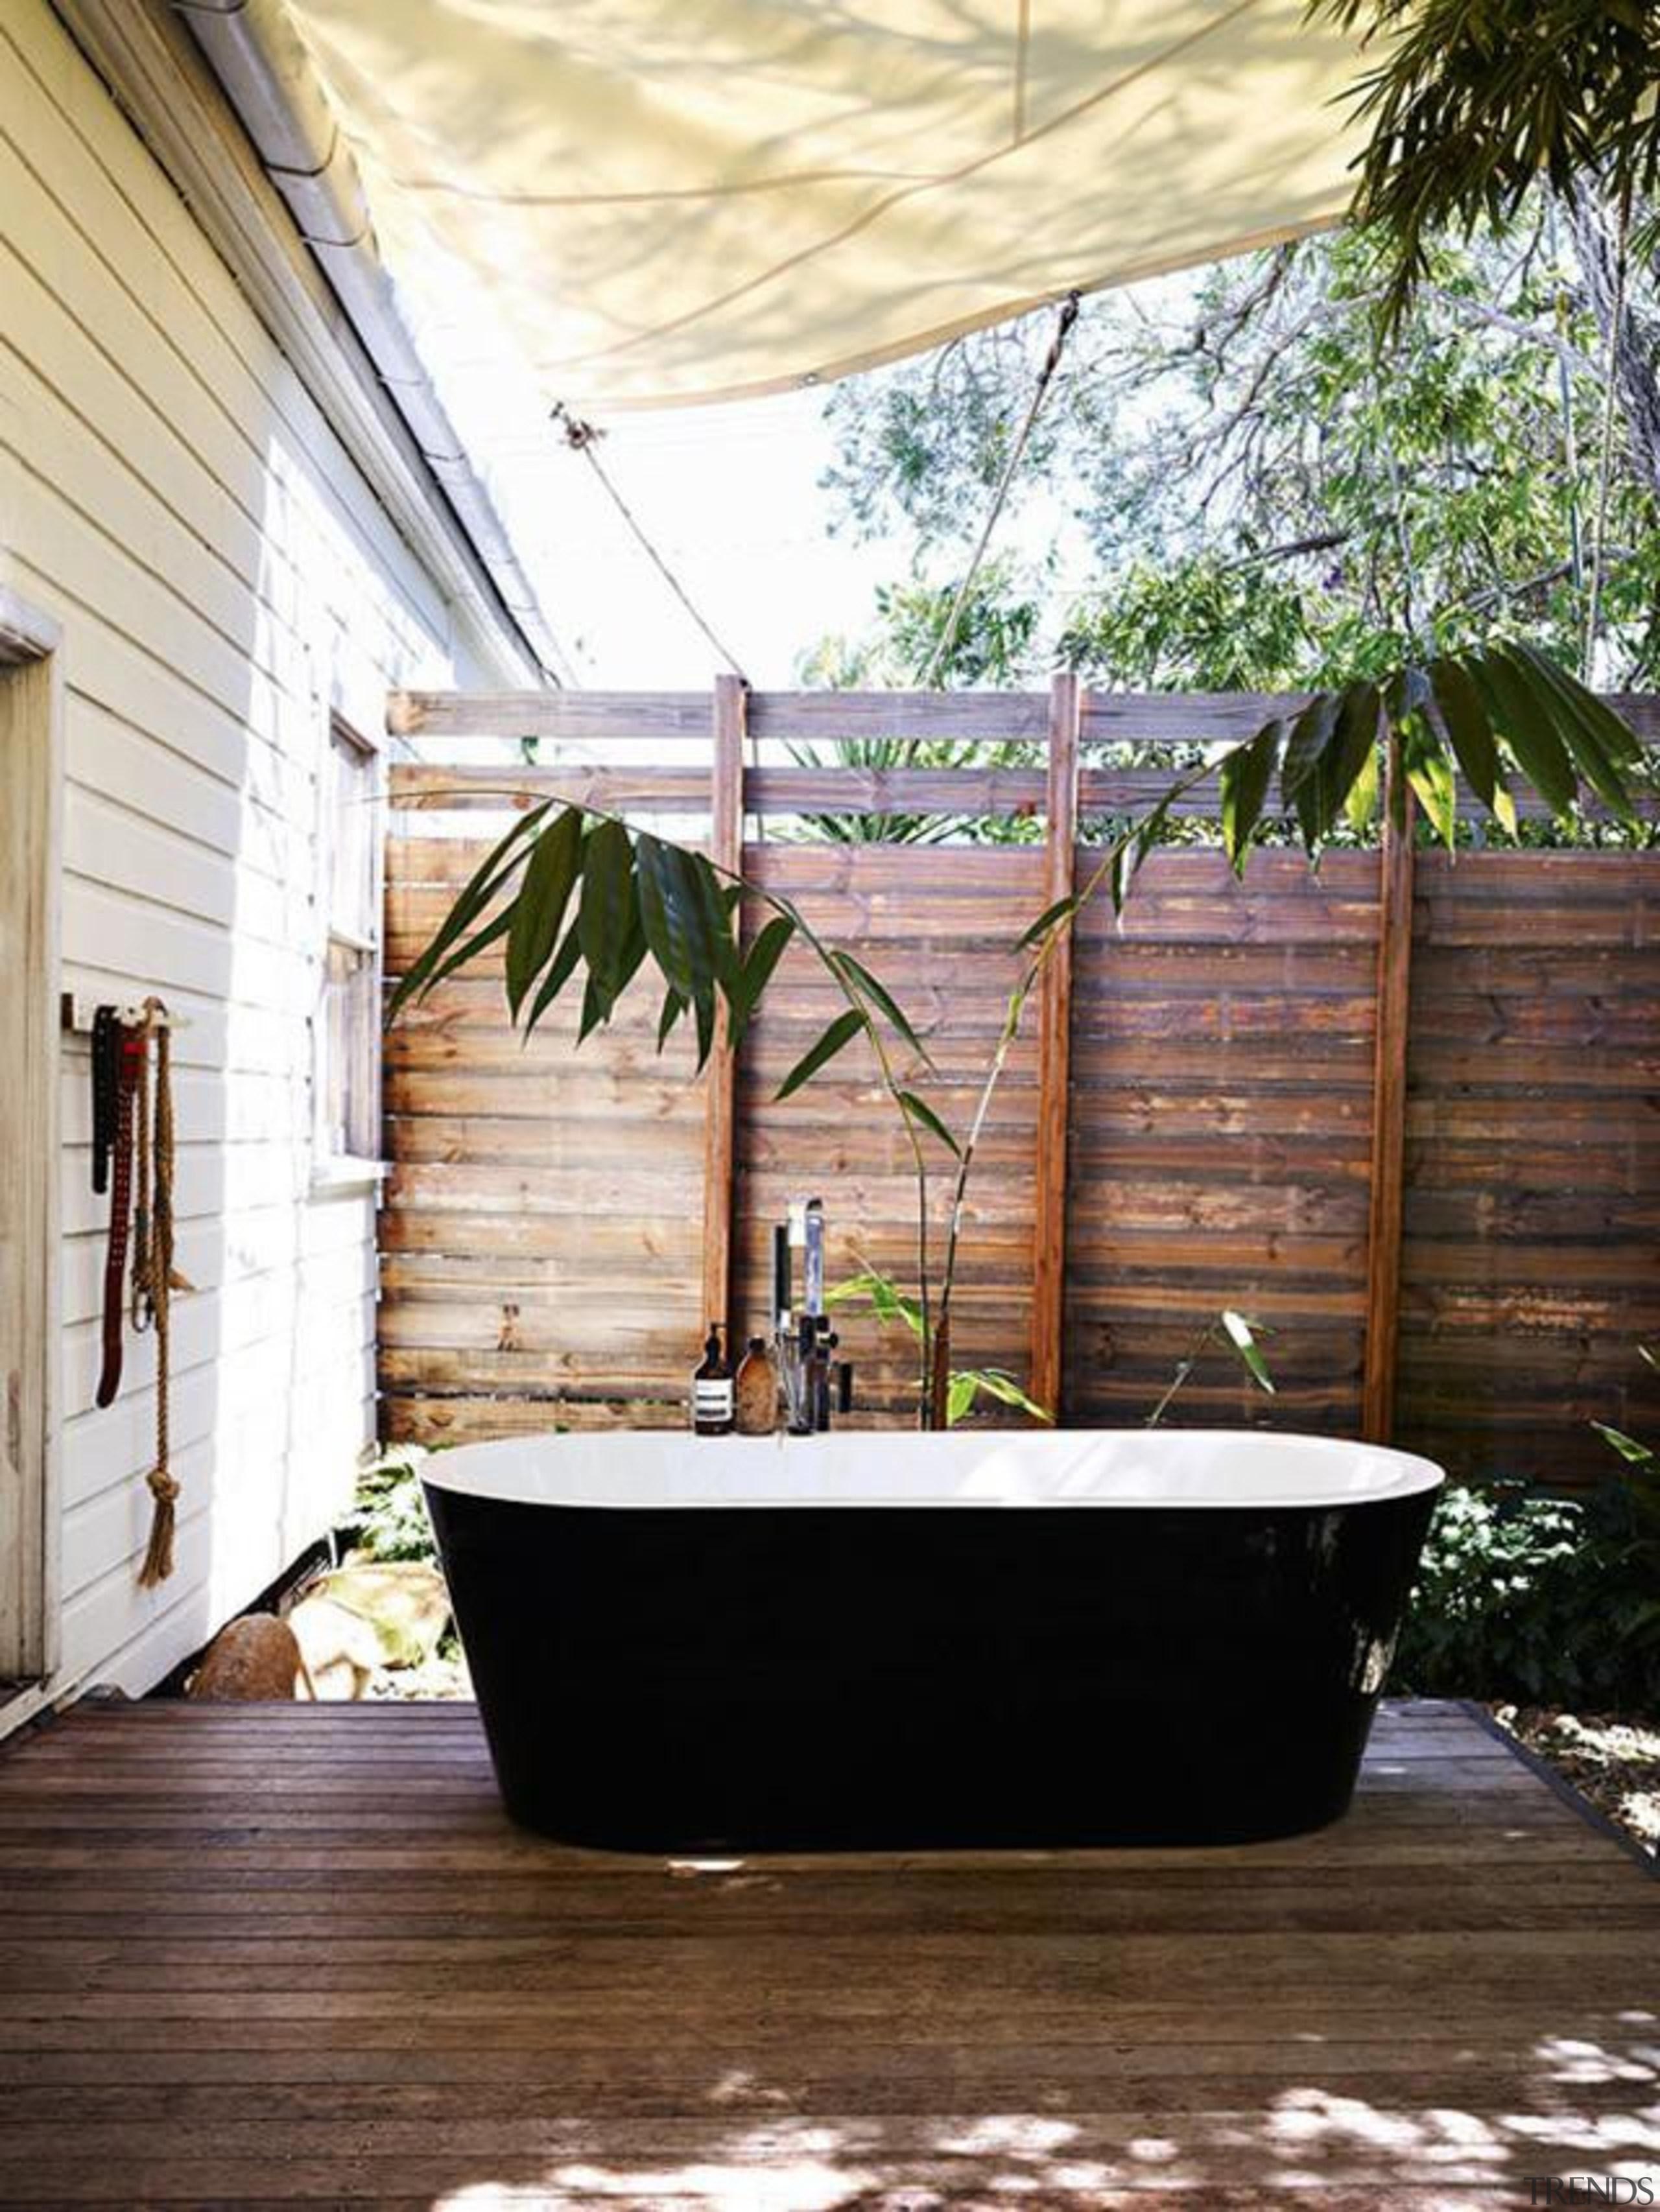 nothing like taking a bath in the nature arecales, home, house, interior design, outdoor structure, plant, tree, wood, white, brown